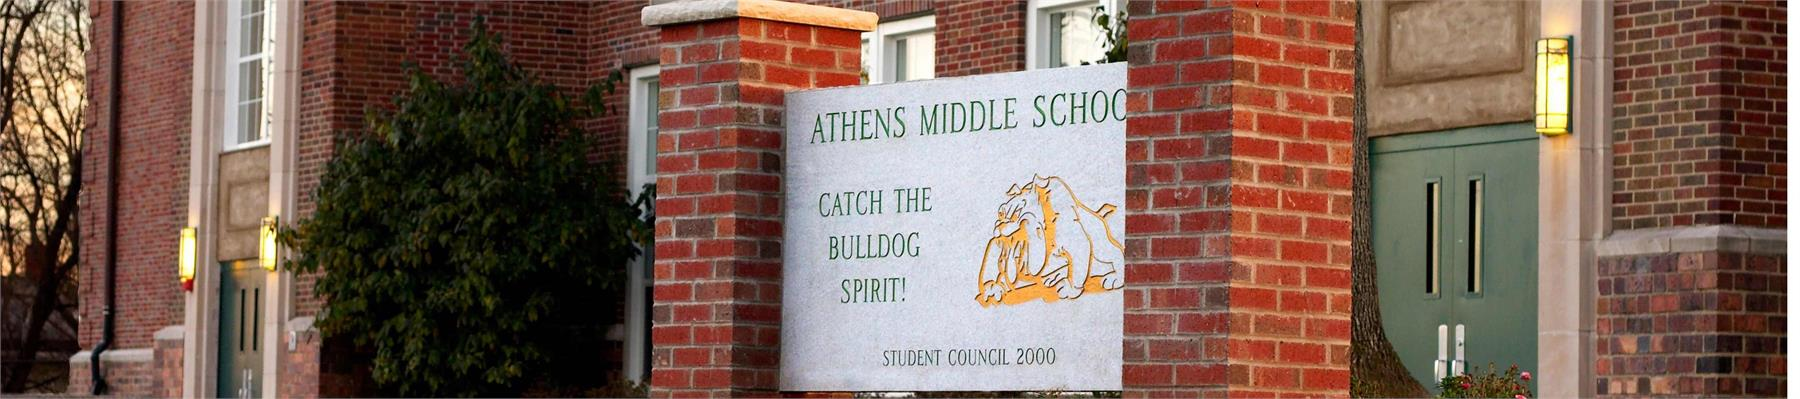 Athens Middle School